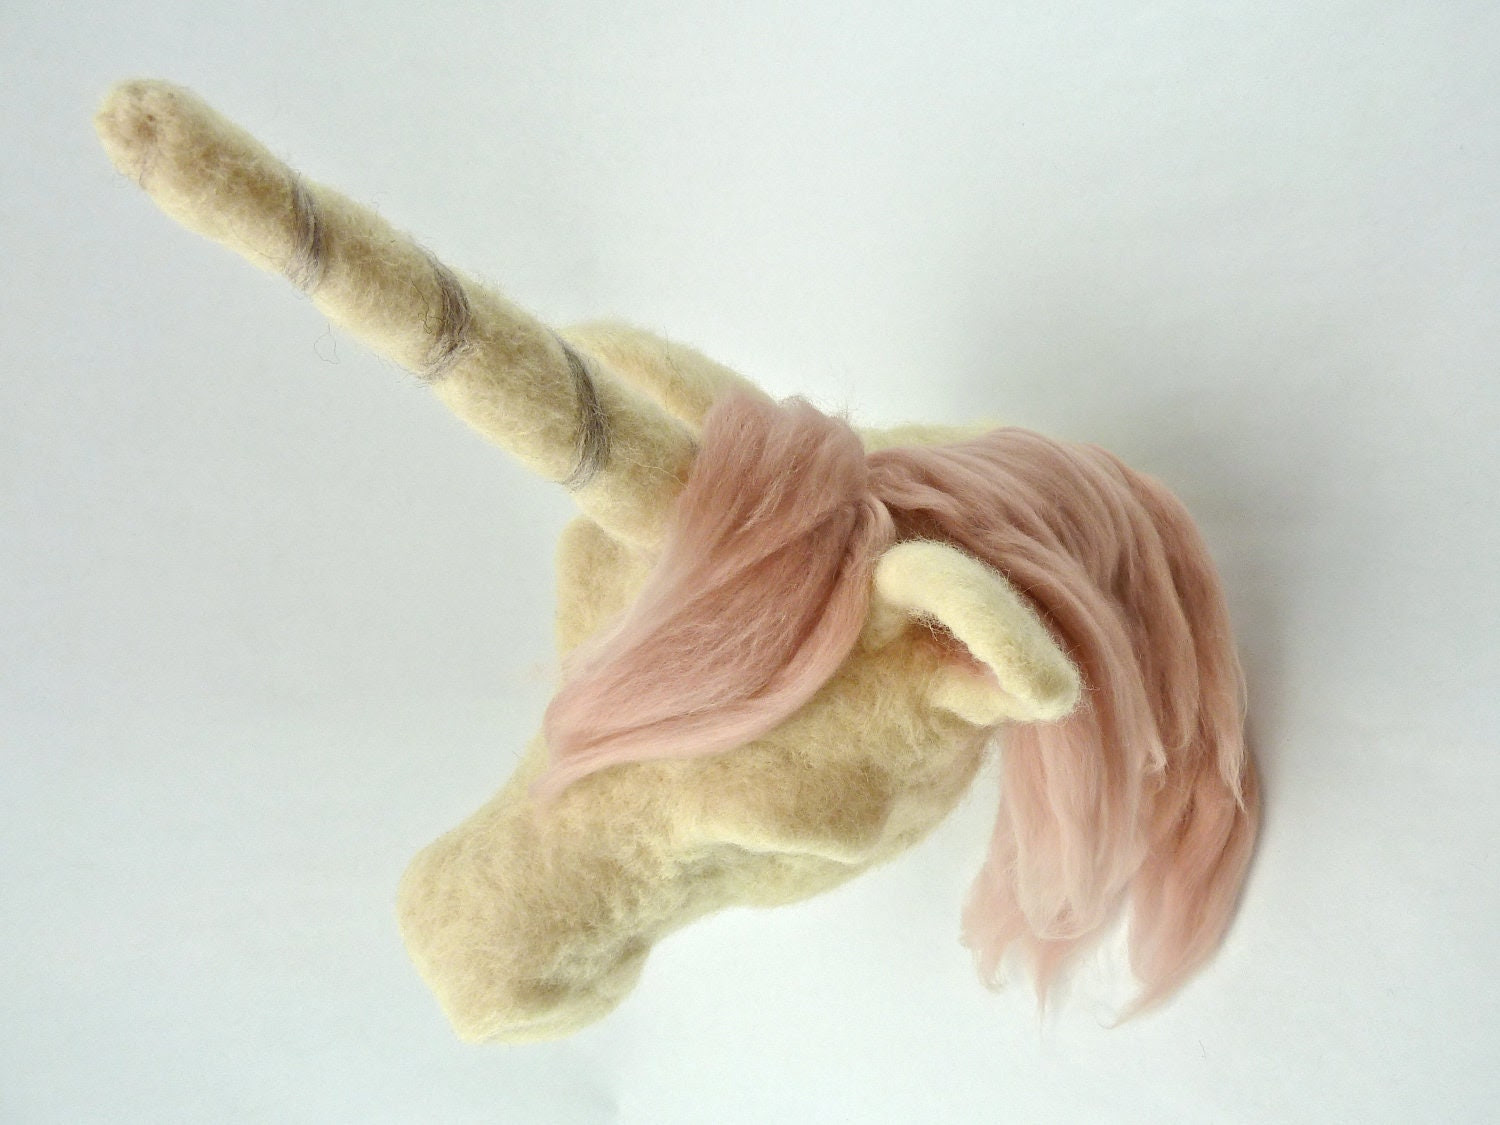 Unicorn Art, Dusty Pink Mane Unicorn Wall Mount, Unicorn Head, Felted Wool Unicorn Faux Taxidermy - sheepcreeknc